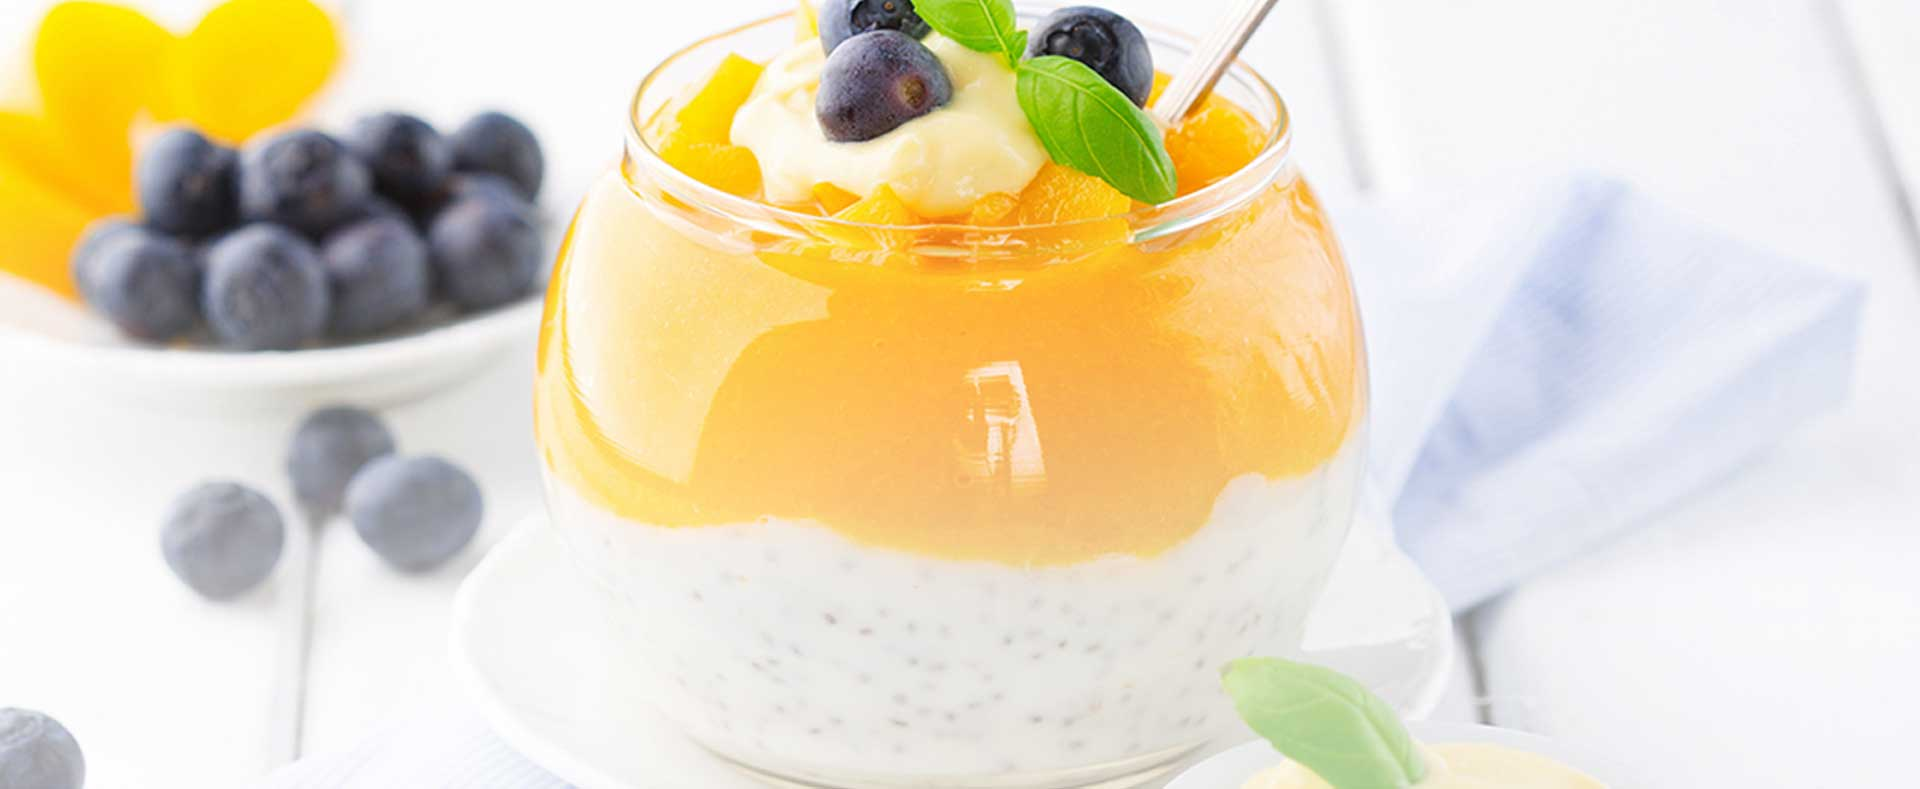 Photo of - Smooth Blueberry Ginger Peach Parfait